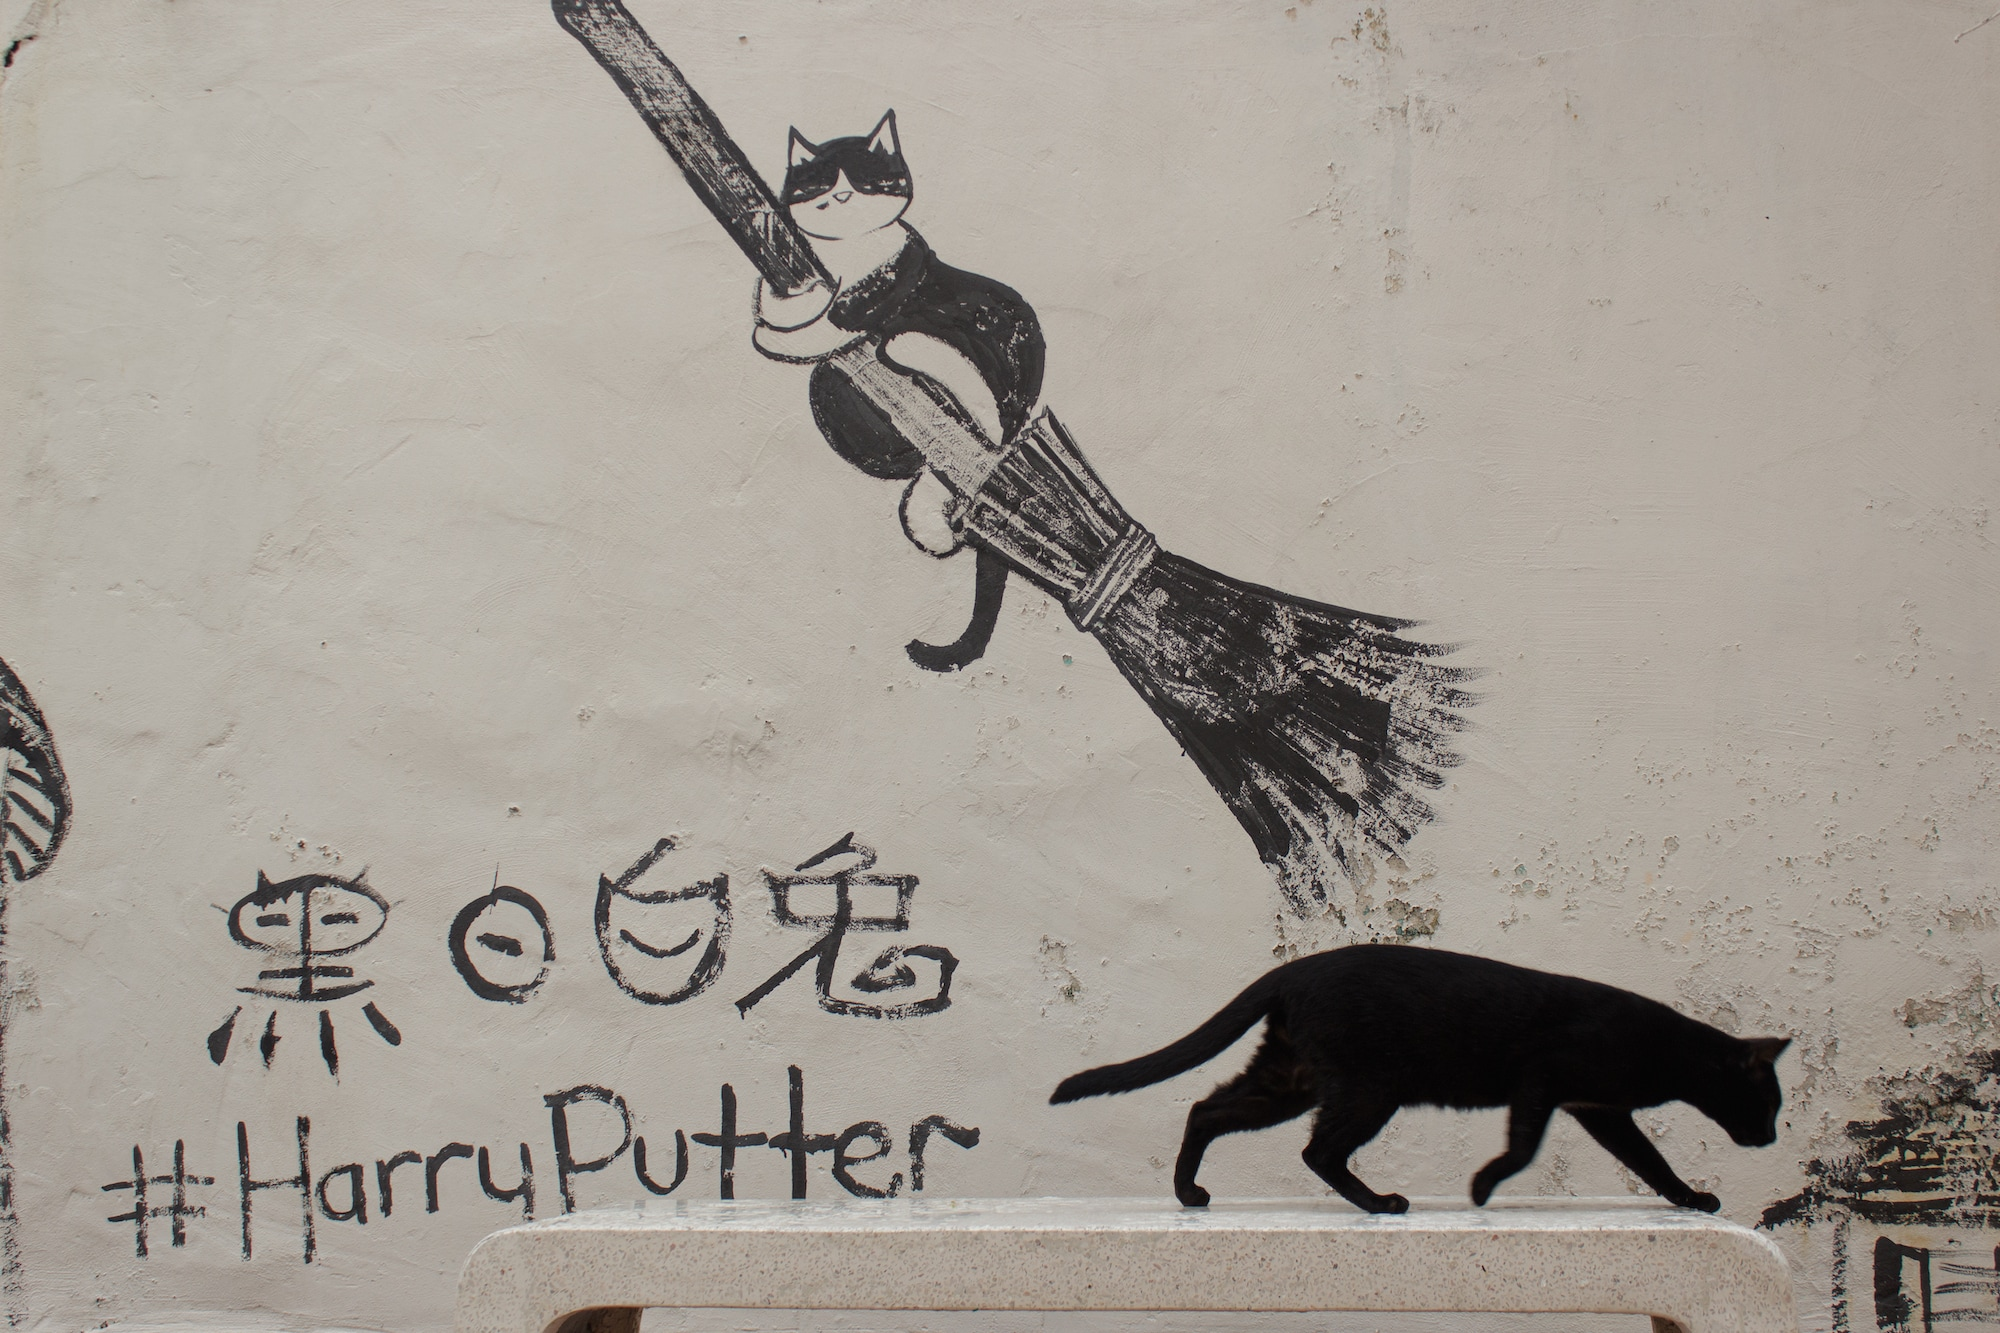 A cat passing by the Harry Putter mural, Malacca